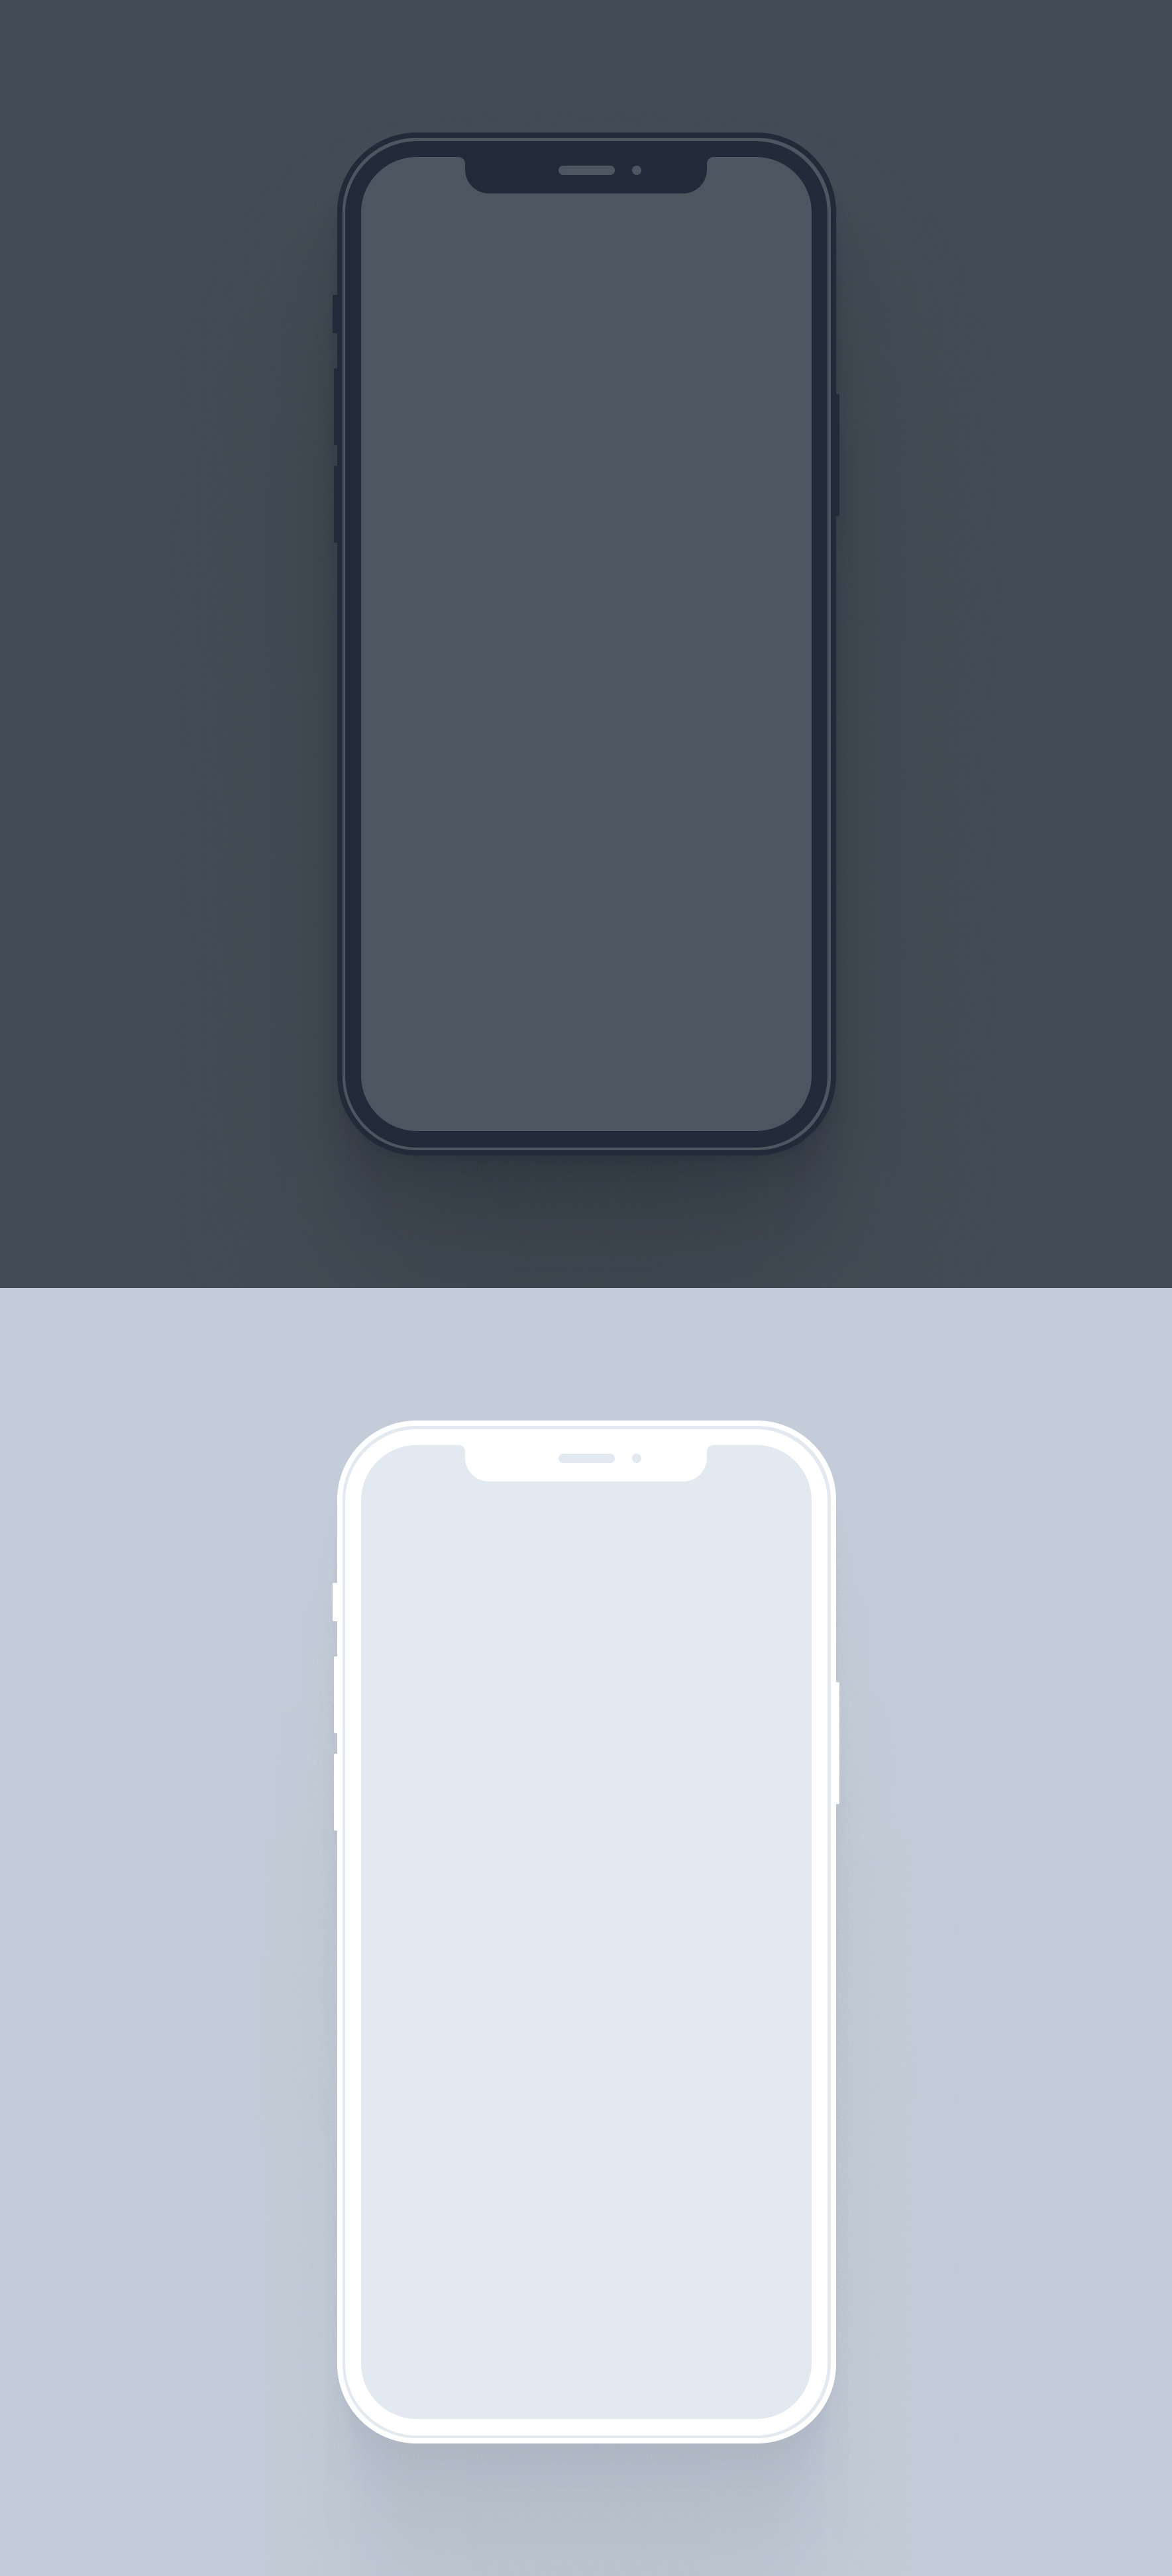 iPhone 12 Pro Free Mockup for Figma - Elegant and clean free iPhone 12 mockup for any kind of app. Dark & Light devices for you to get started.